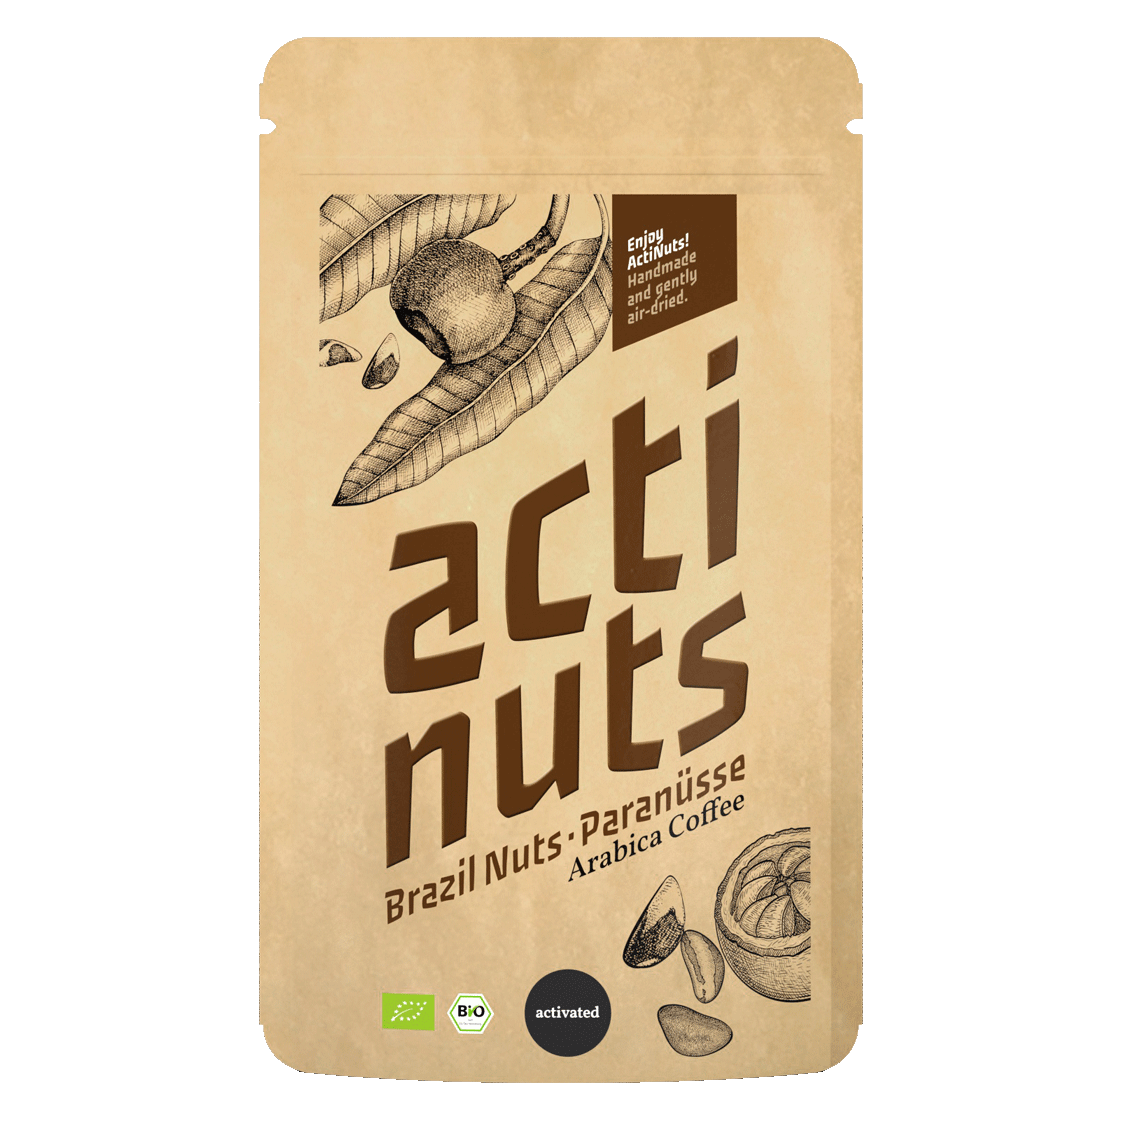 Activated Brazil nut kernels with arabica coffee and cacao